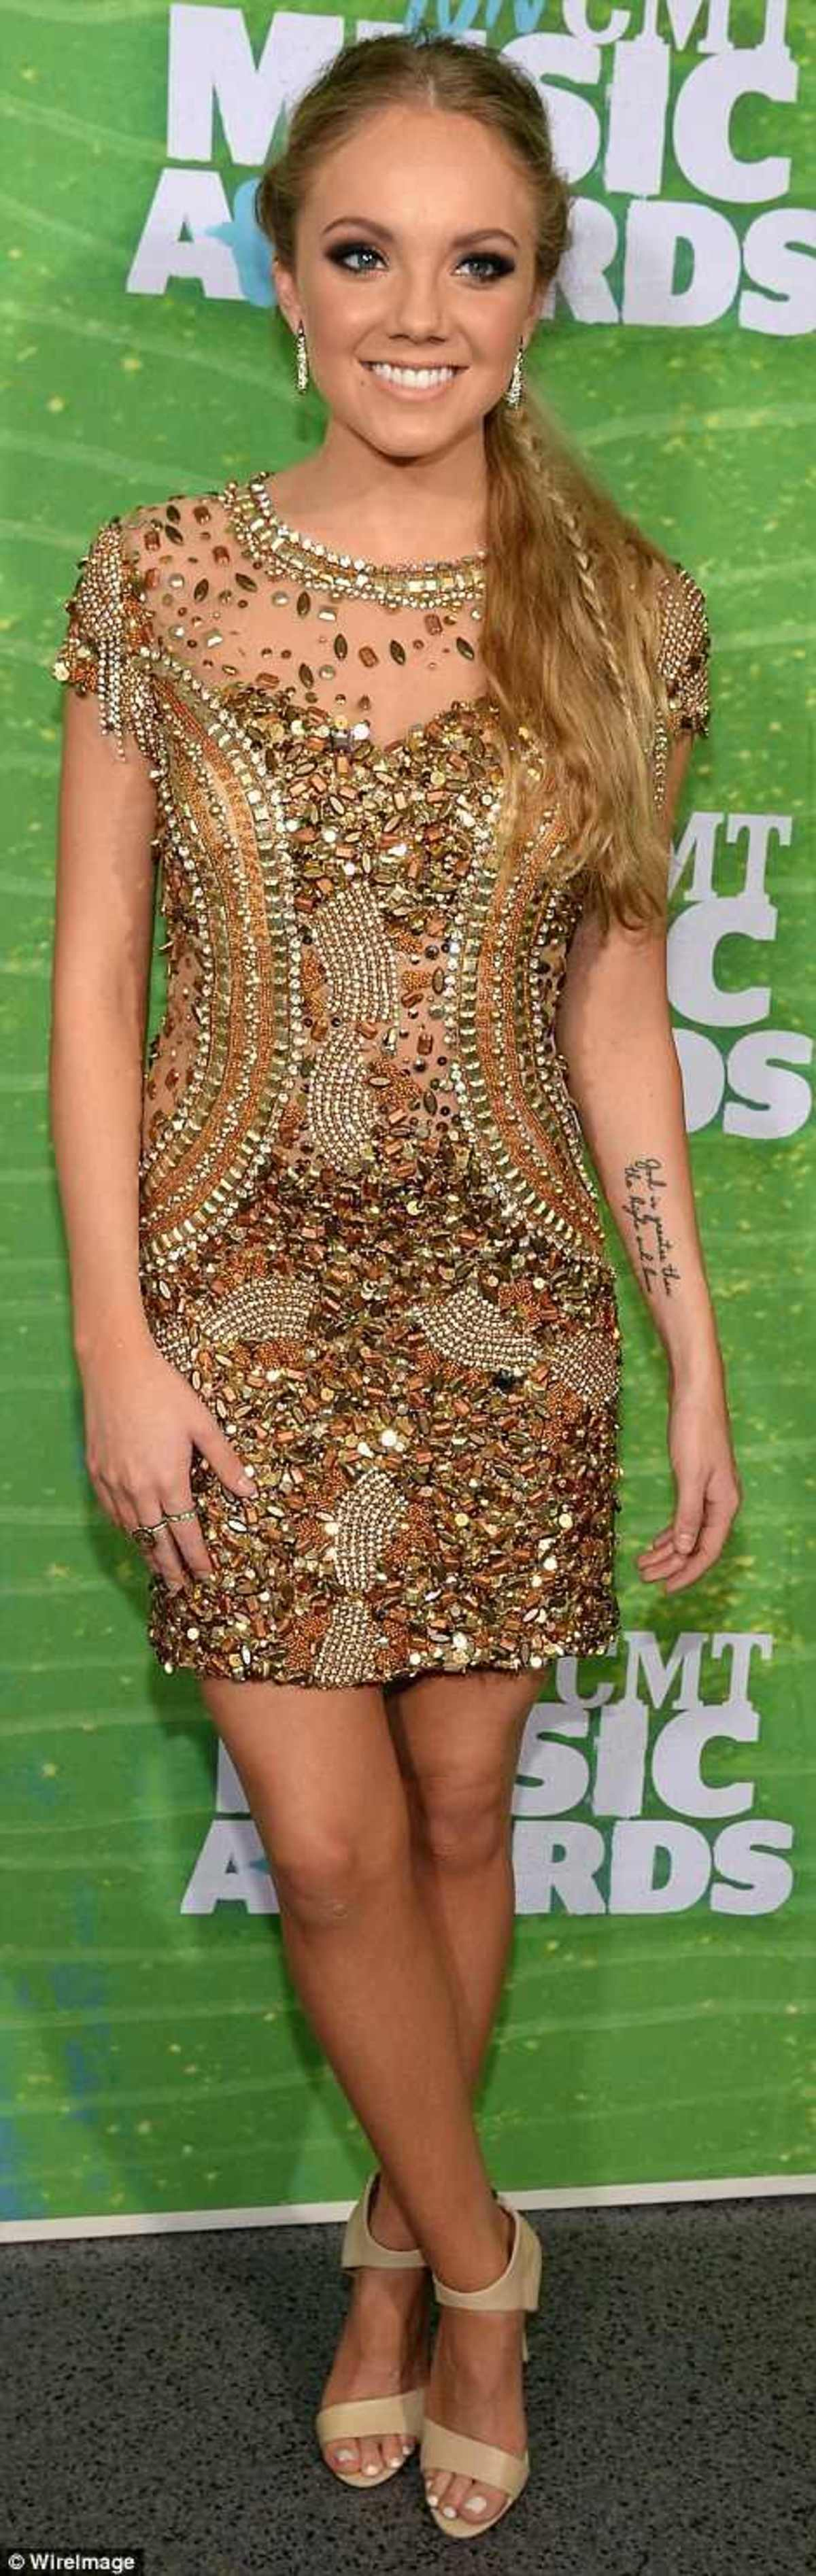 2984DD4E00000578-0-Gold_standard_Lindsay_Ell_and_Danielle_Bradbery_both_rocked_the_-a-95_1433984344465